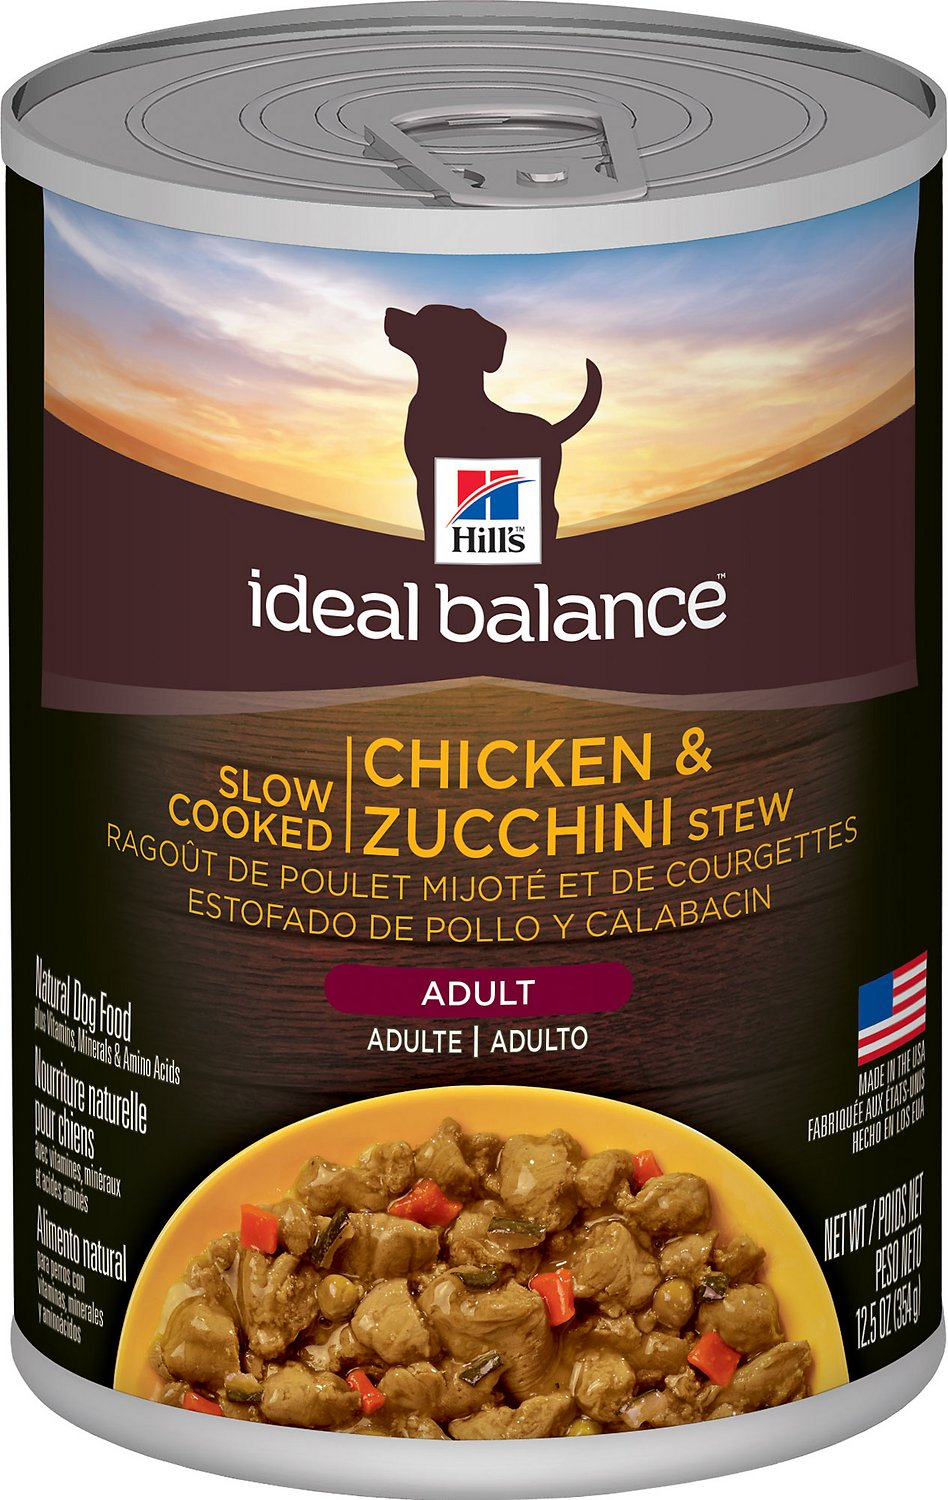 Ideal Balance Dog Food >> Hill S Ideal Balance Slow Cooked Chicken Zucchini Stew Canned Dog Food 12 5 Oz Case Of 12